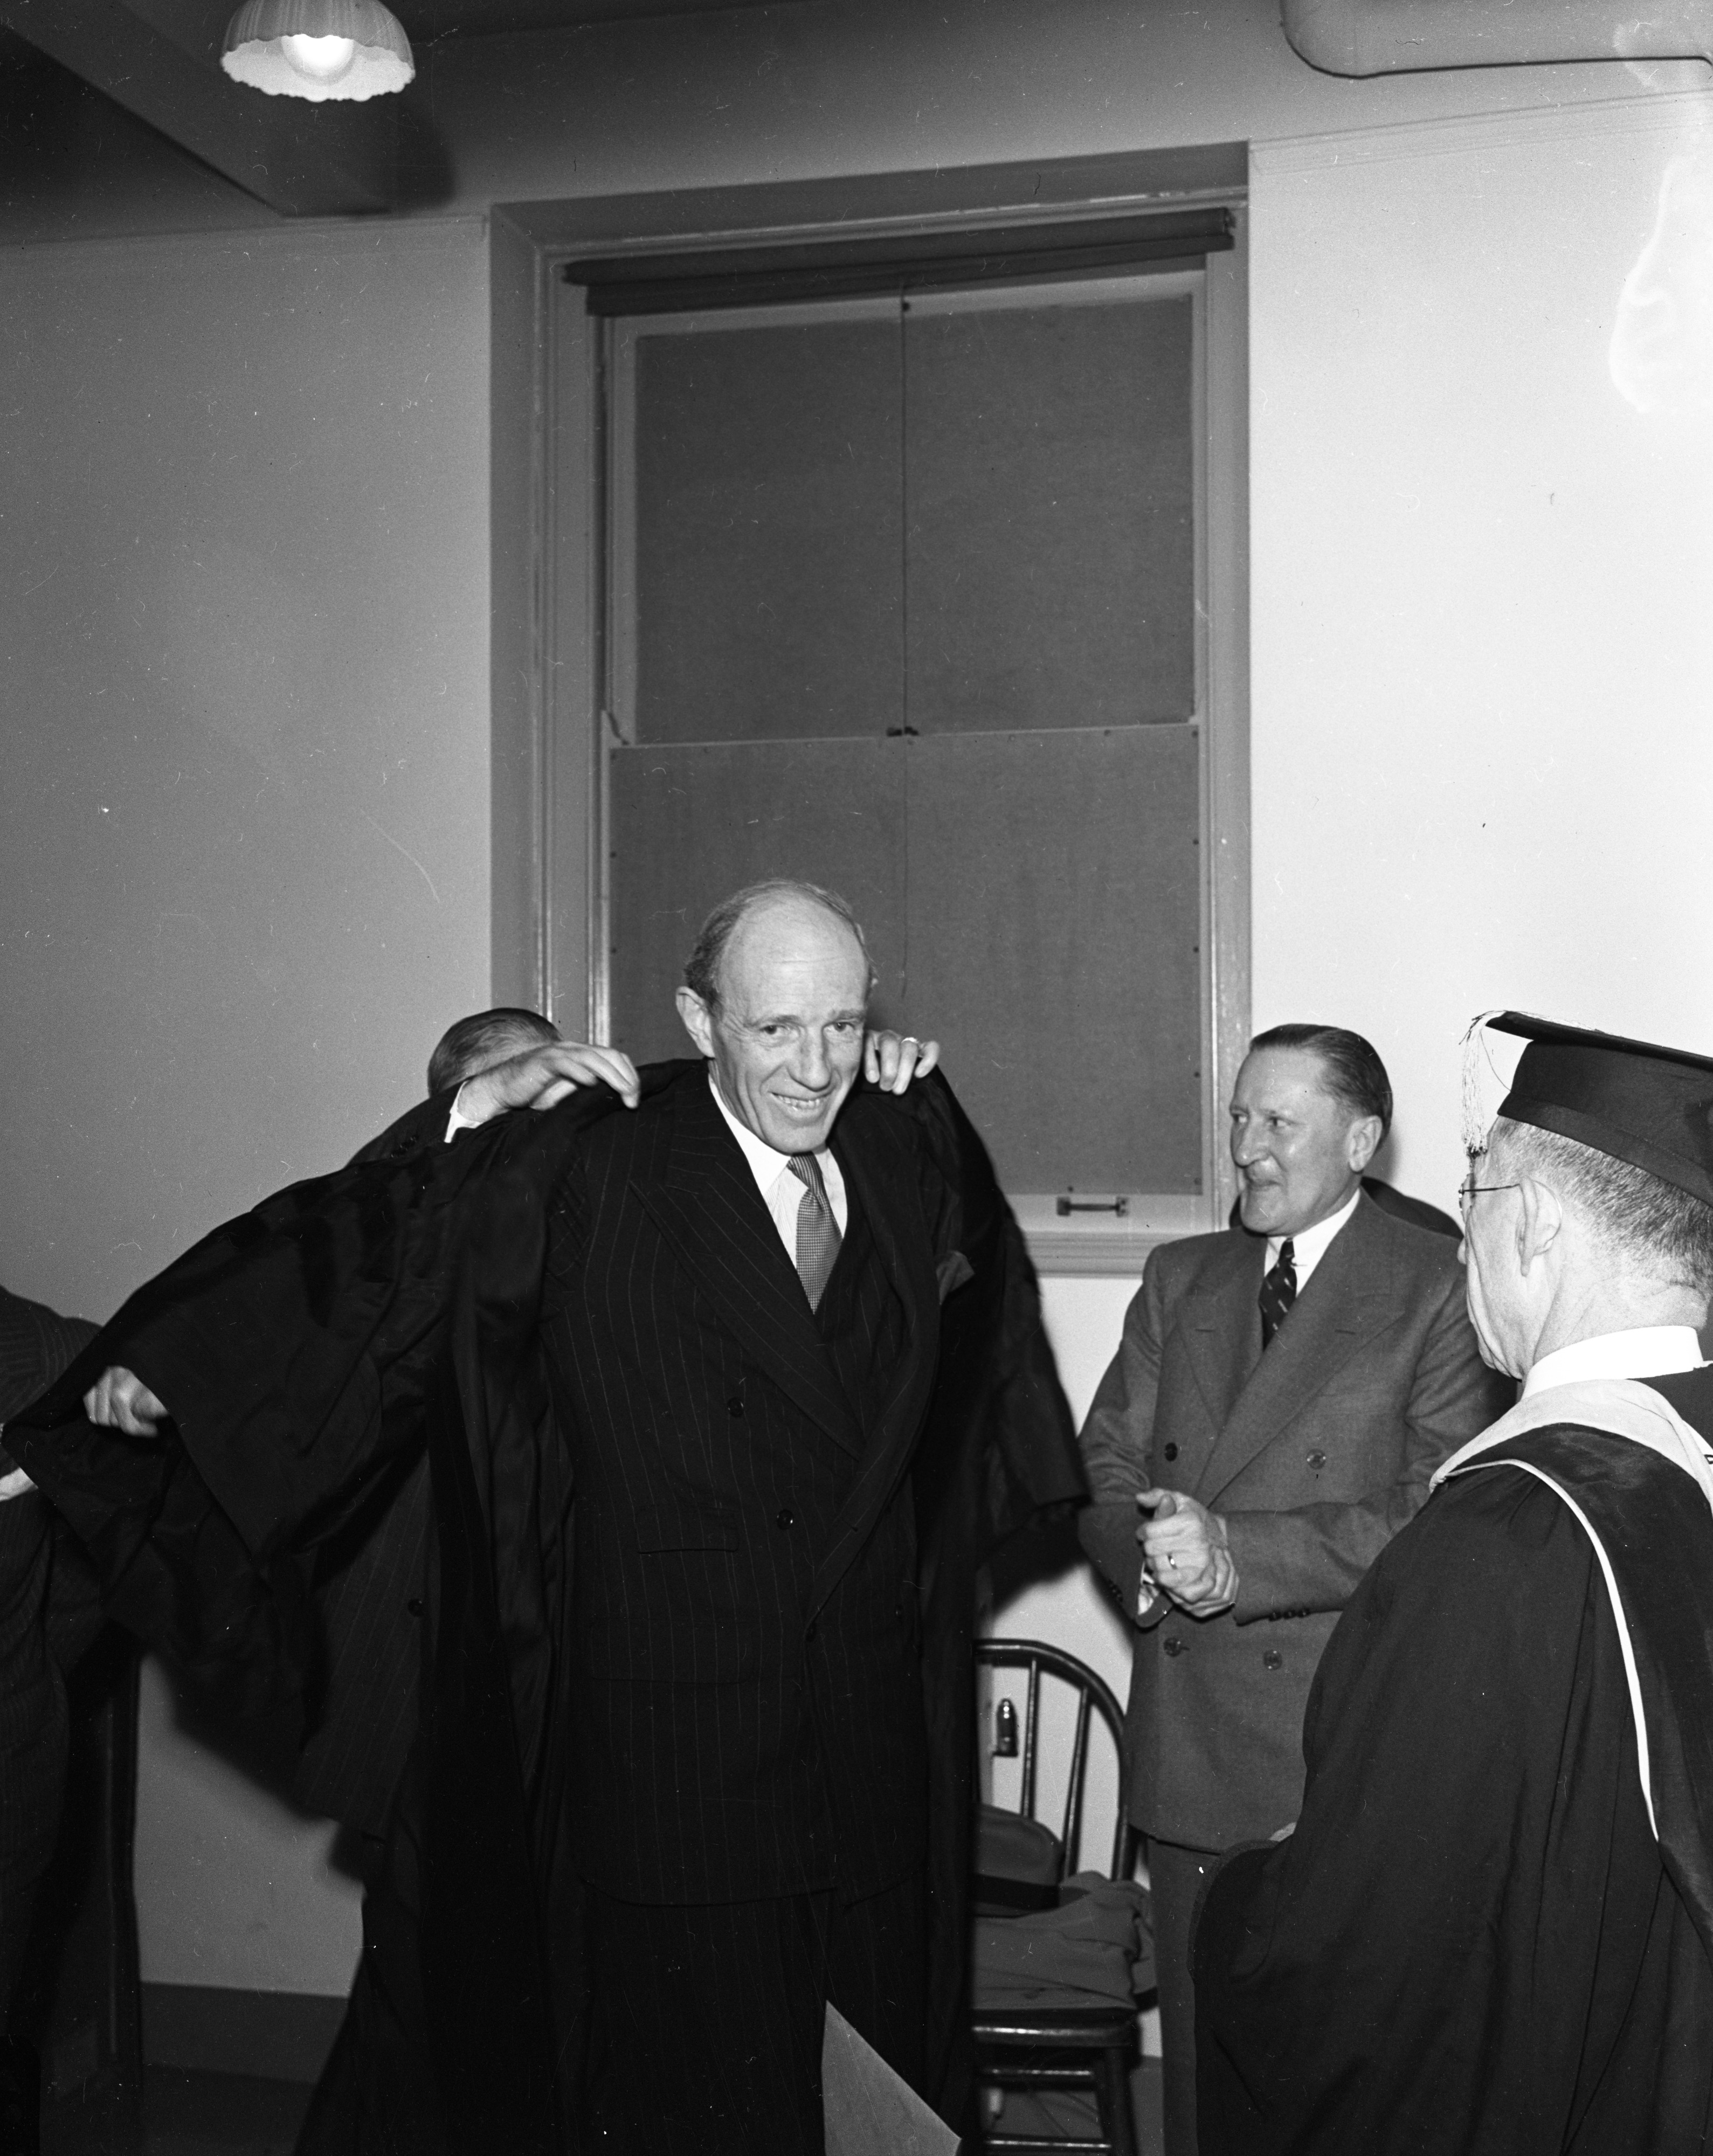 Edward Frederick Lindley Wood, third Viscount Halifax and British Ambassador to the United States, receives honorary degree at University of Michigan, April 1944 image